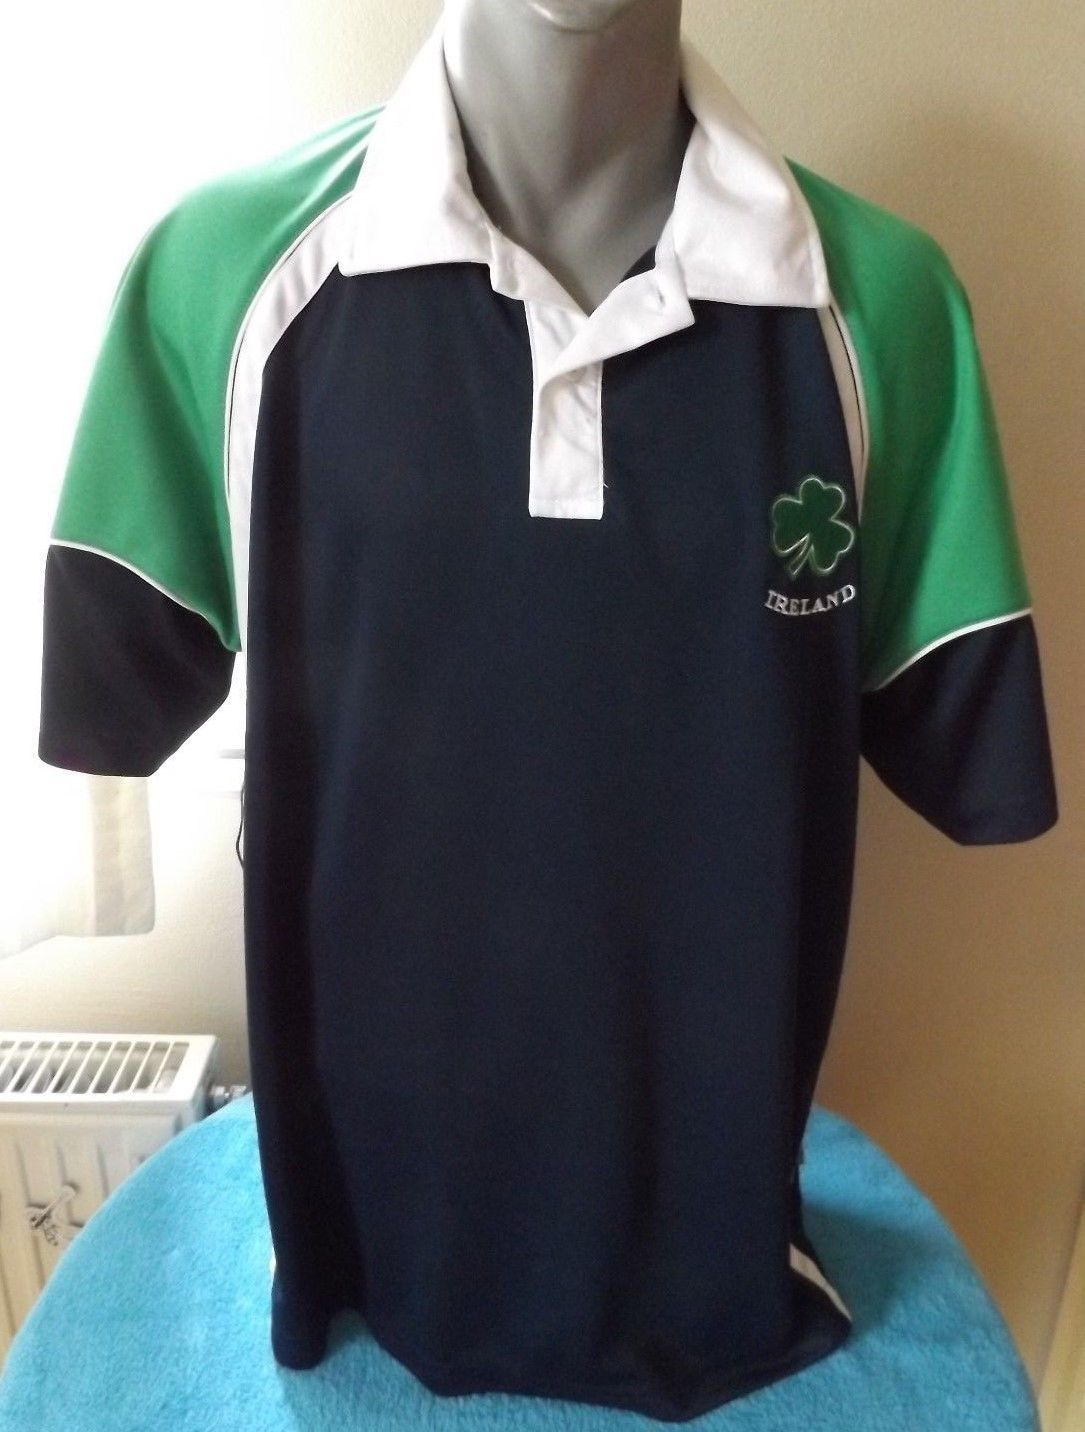 RugbyJersey Nations Irish ShirtSix My Ebay ActiveOther Sports gybf76